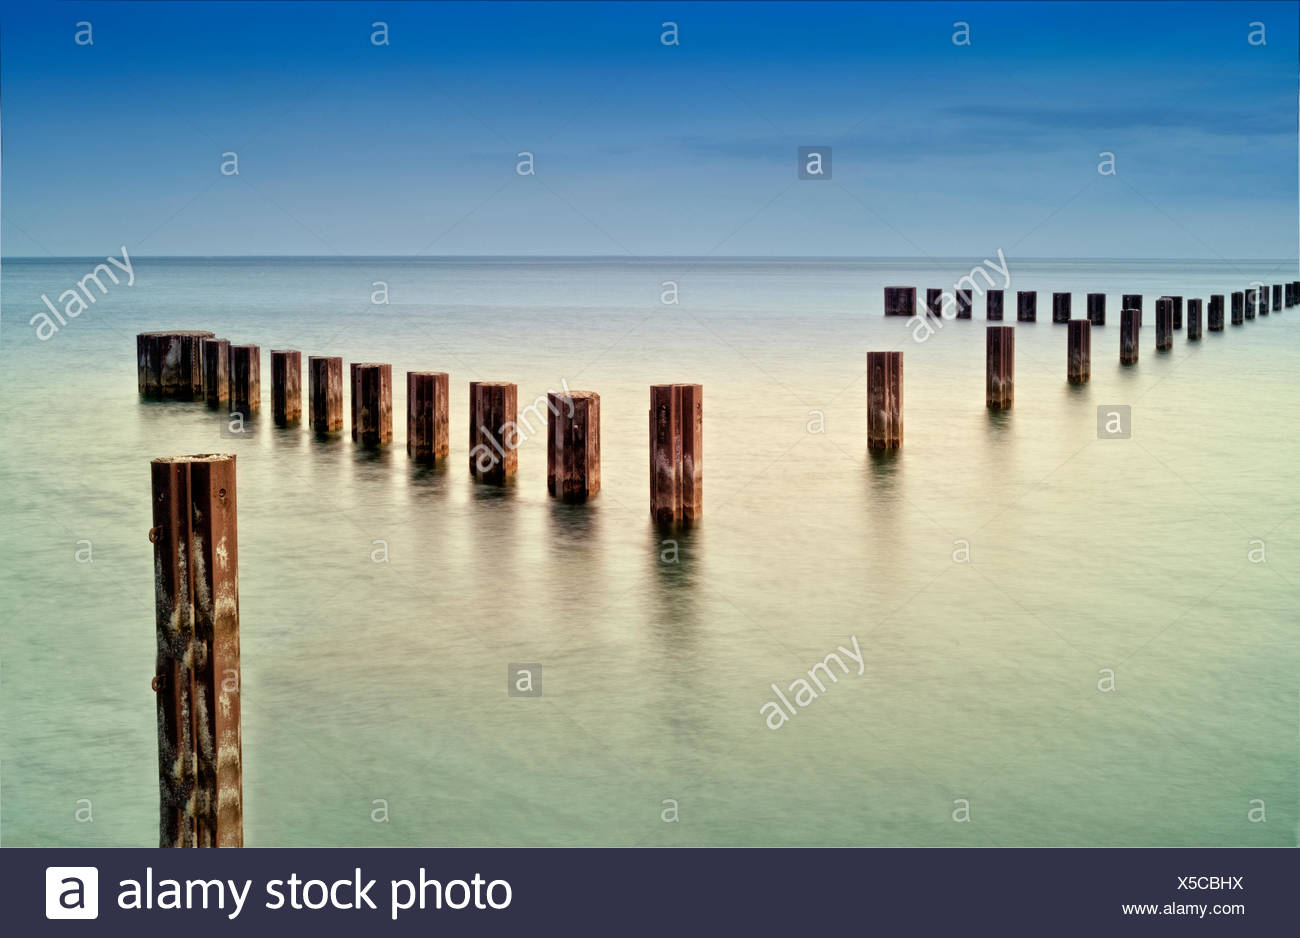 USA, Illinois, Cook County, Chicago, Metal rods in Lake Michigan - Stock Image